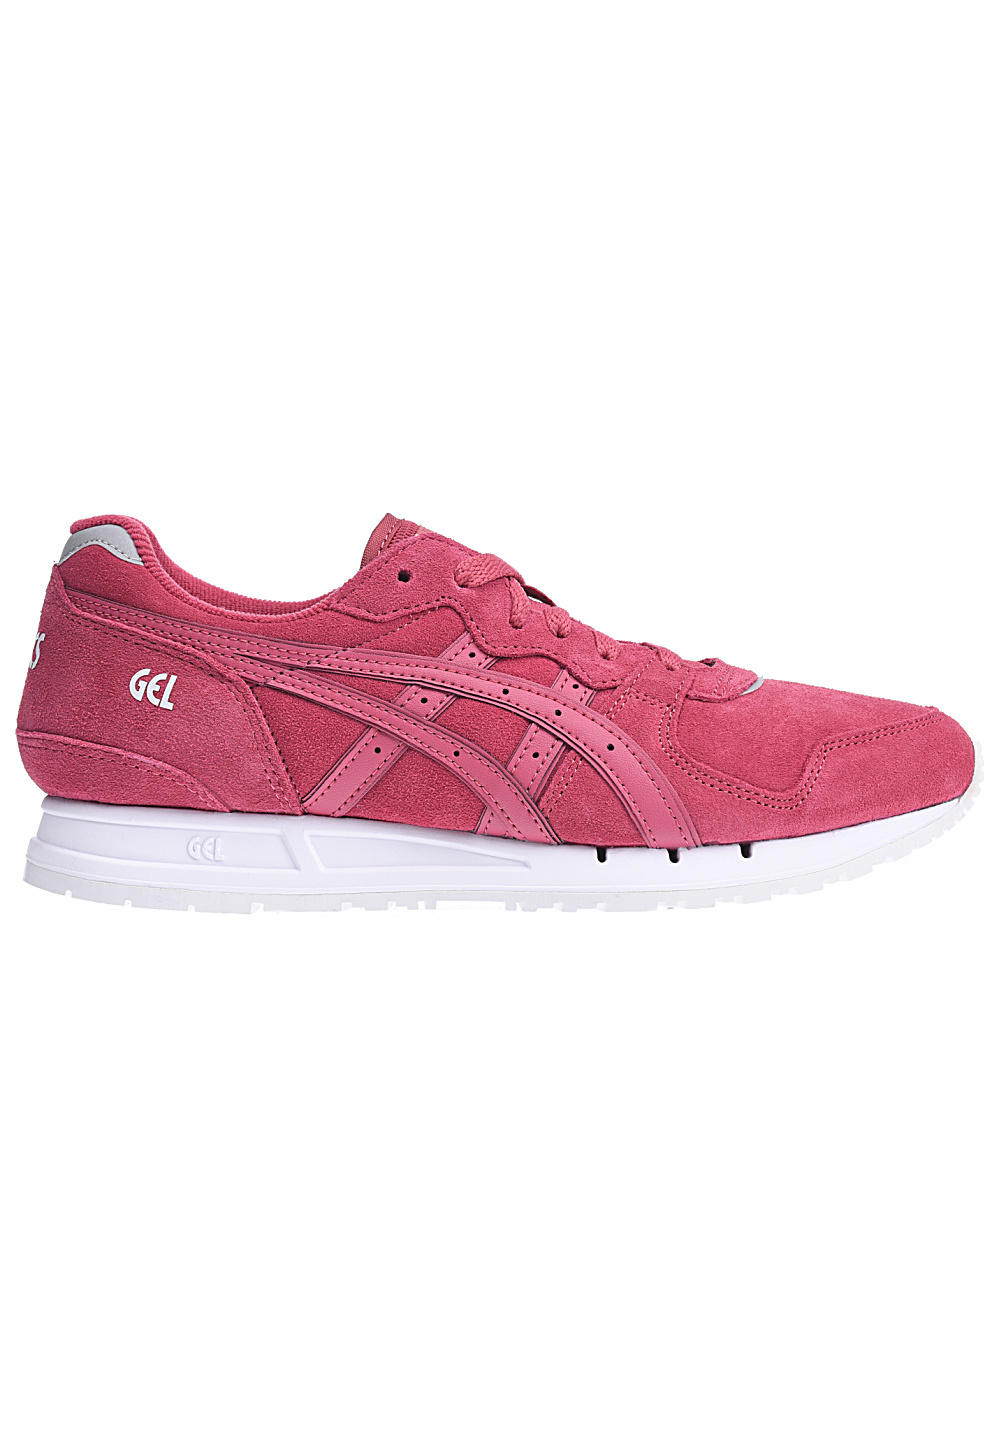 Baskets pour Femme Asics Tiger Gel-Movimentum Rose